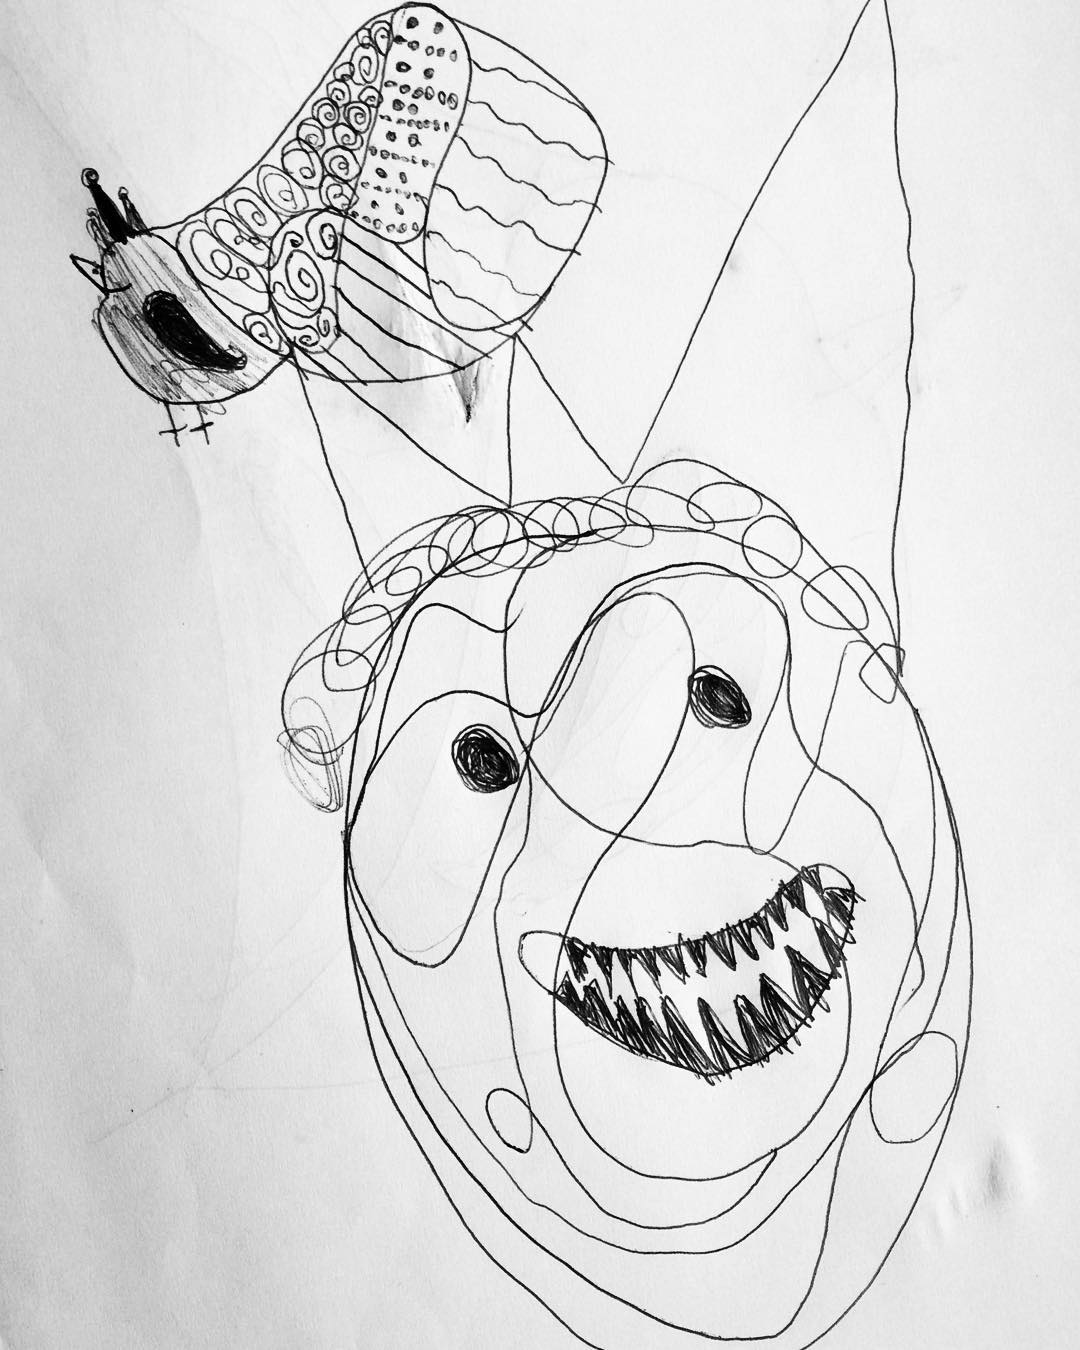 1080x1350 Awesome Drawing By My 7 Year Old Cousin Lea. (Update